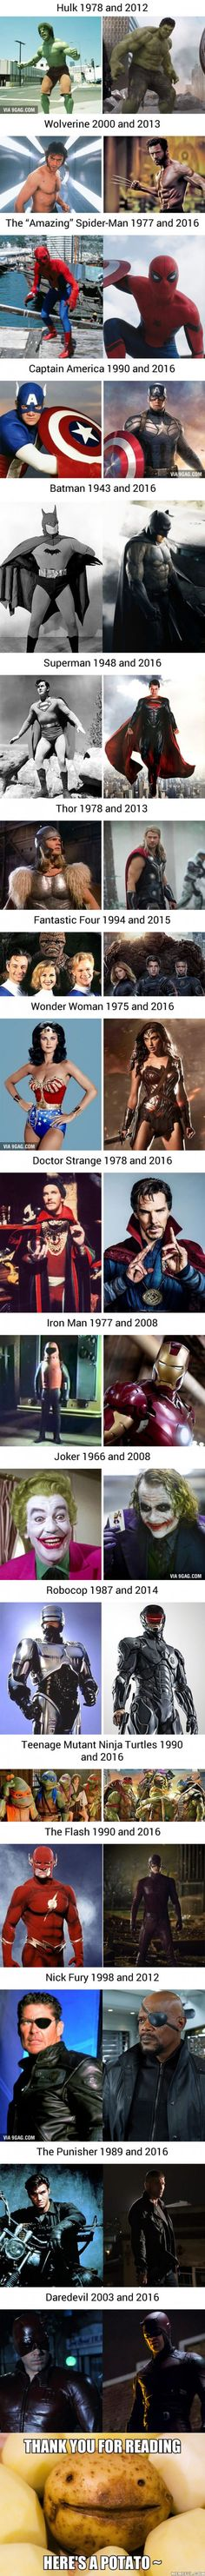 On Screen Superheros Then And Now